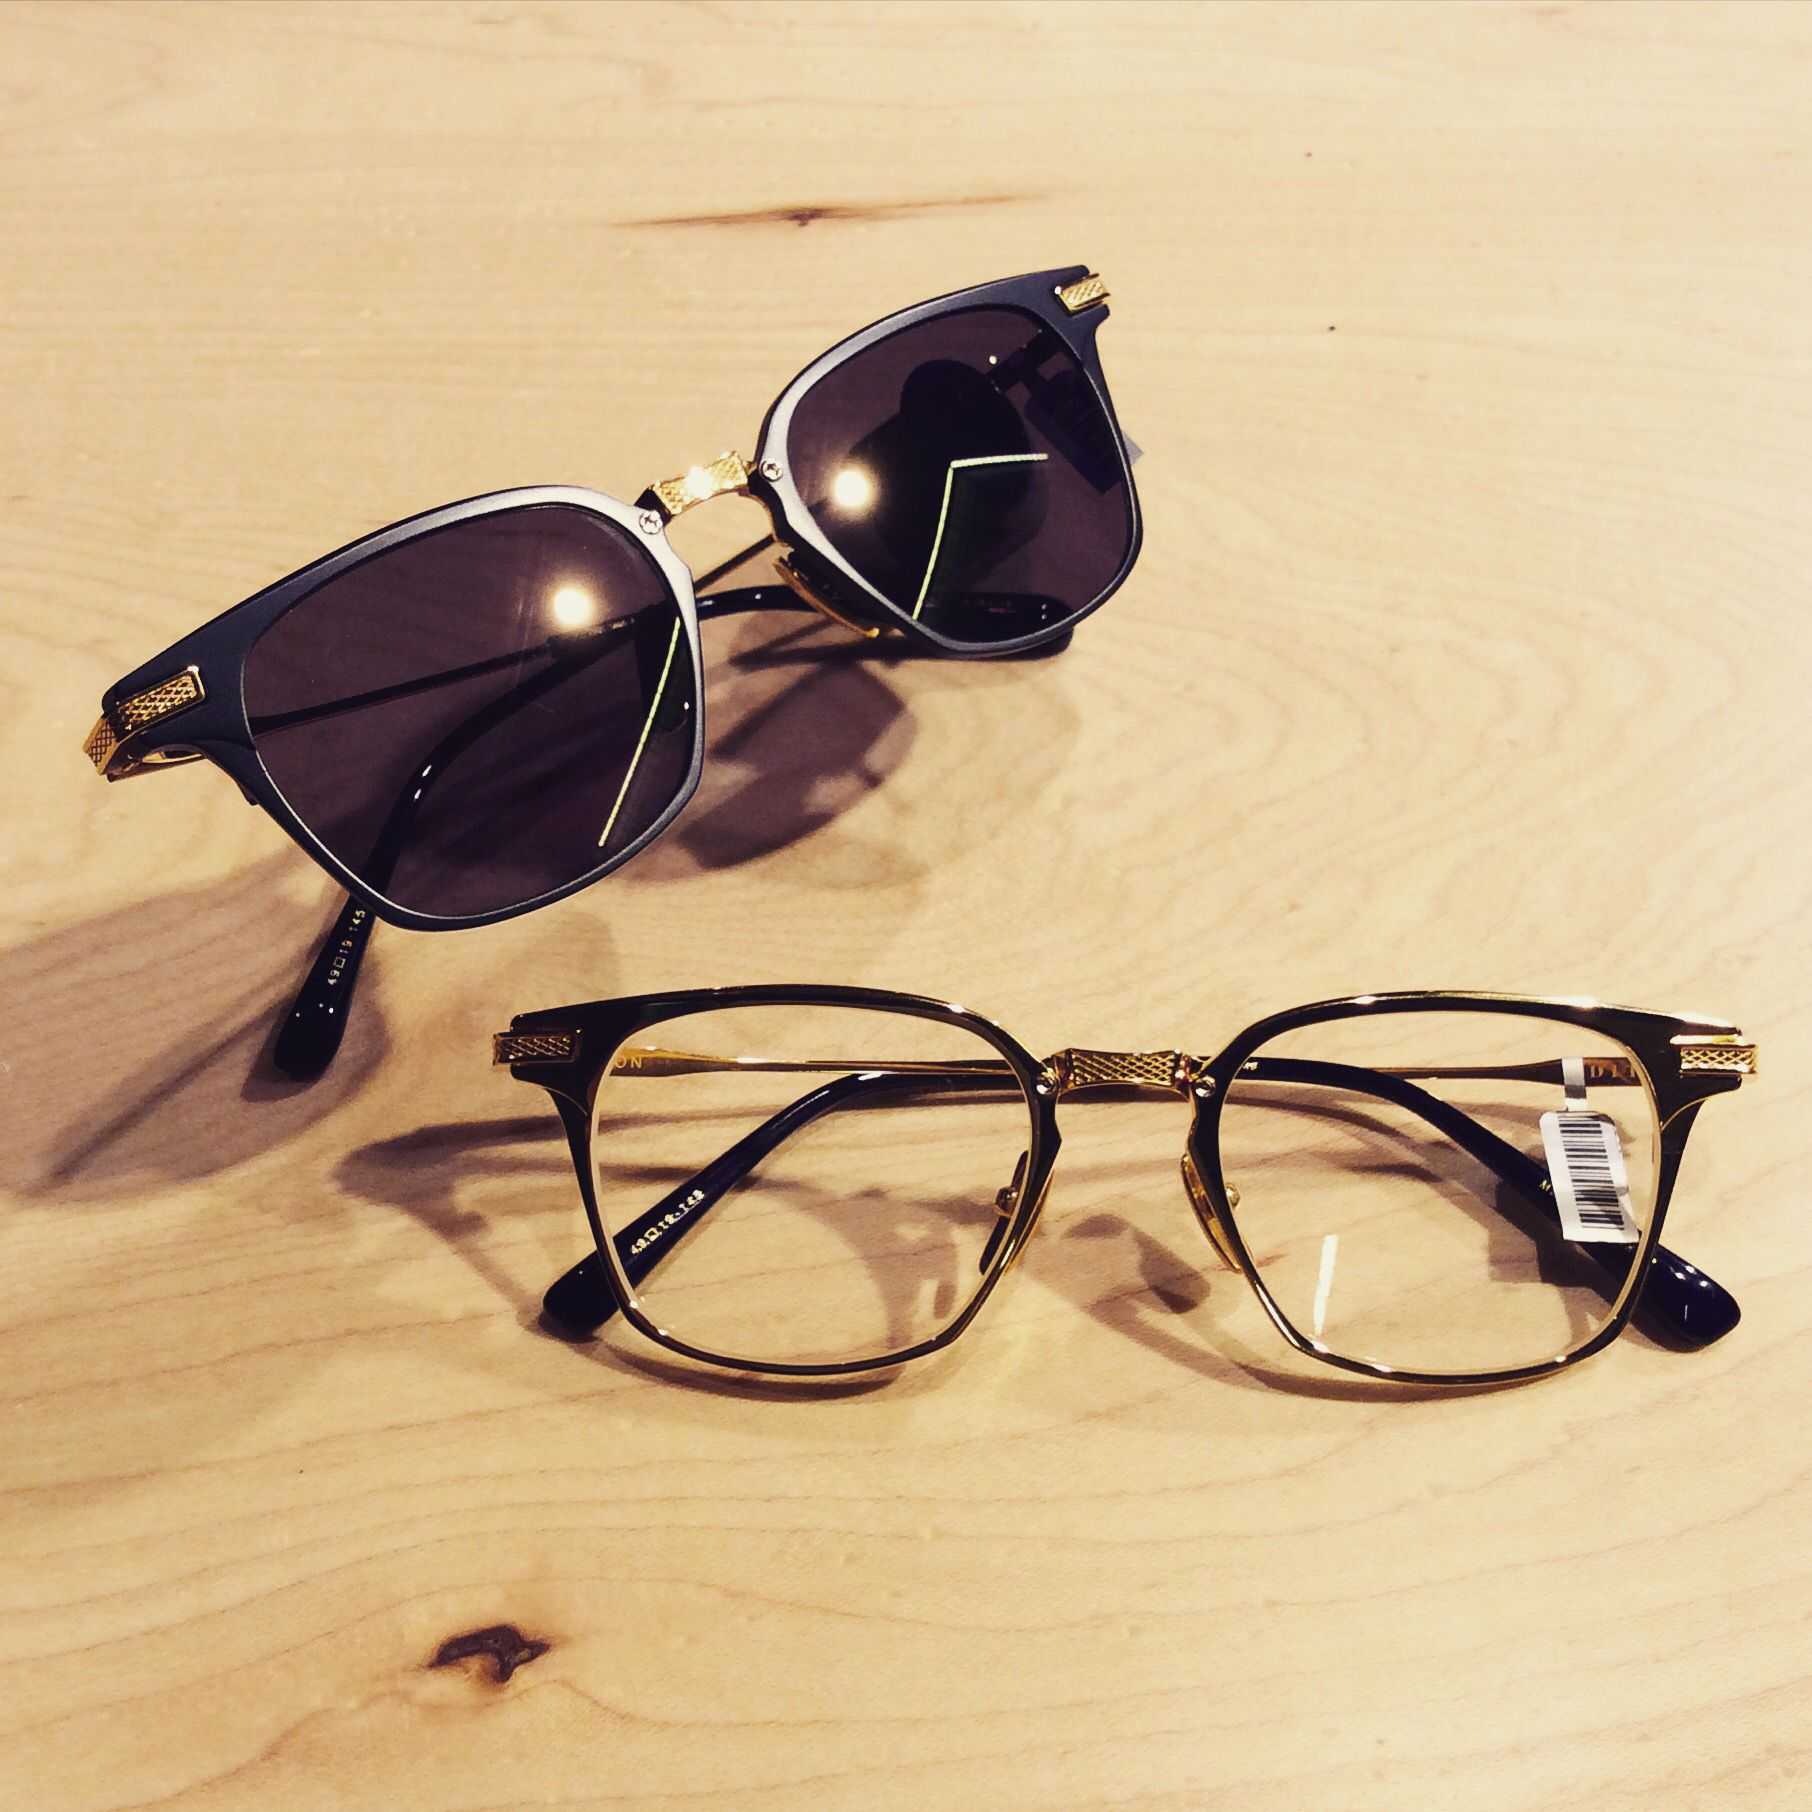 879a06ffed7 Love the way we go together ❤ Union by Dita Eyewear - inspired by Los  Angeles  Union Train Station.